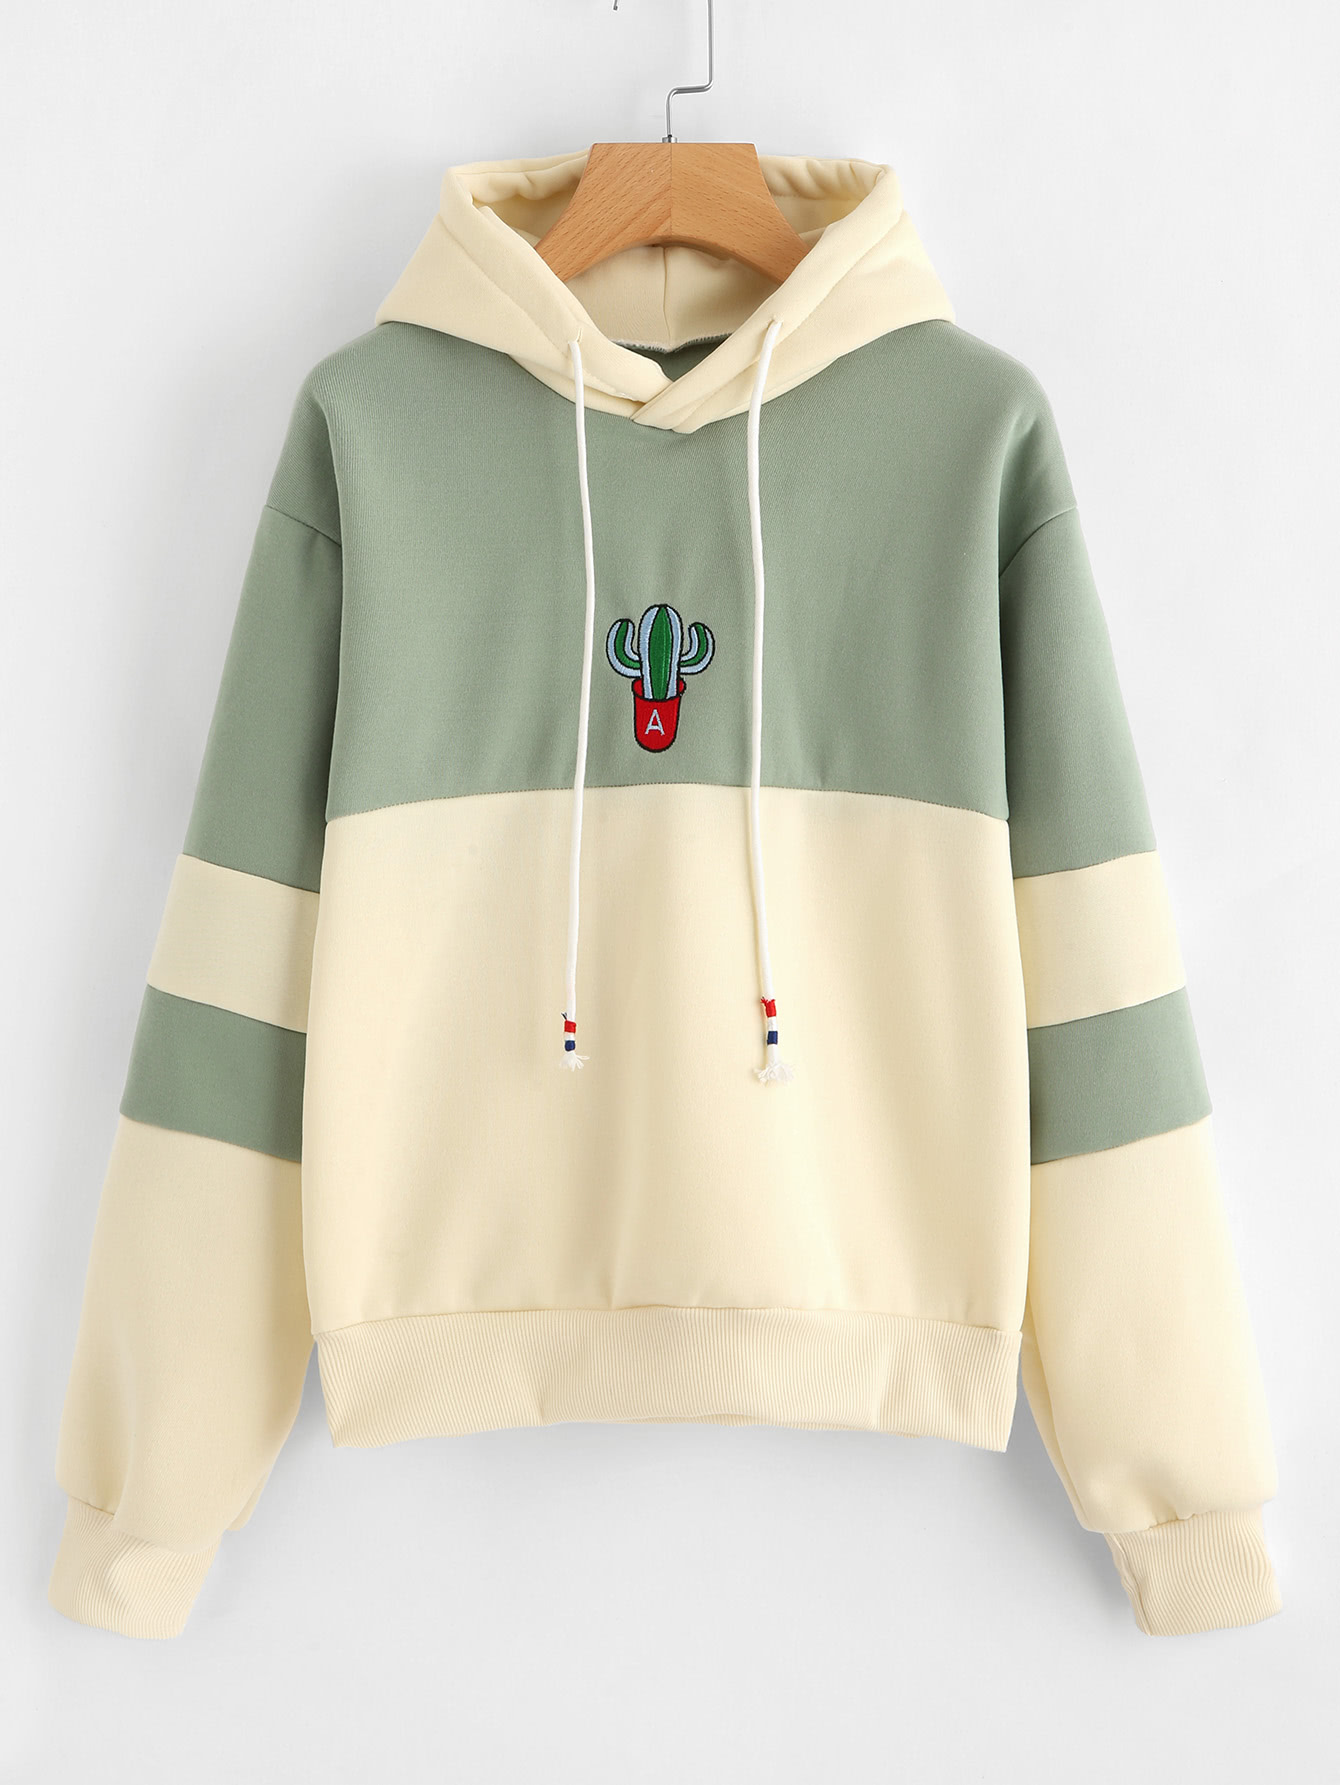 acbc05f4b1 Shop Cactus Embroidered Color Block Hoodie online. SheIn offers Cactus  Embroidered Color Block Hoodie   more to fit your fashionable needs.